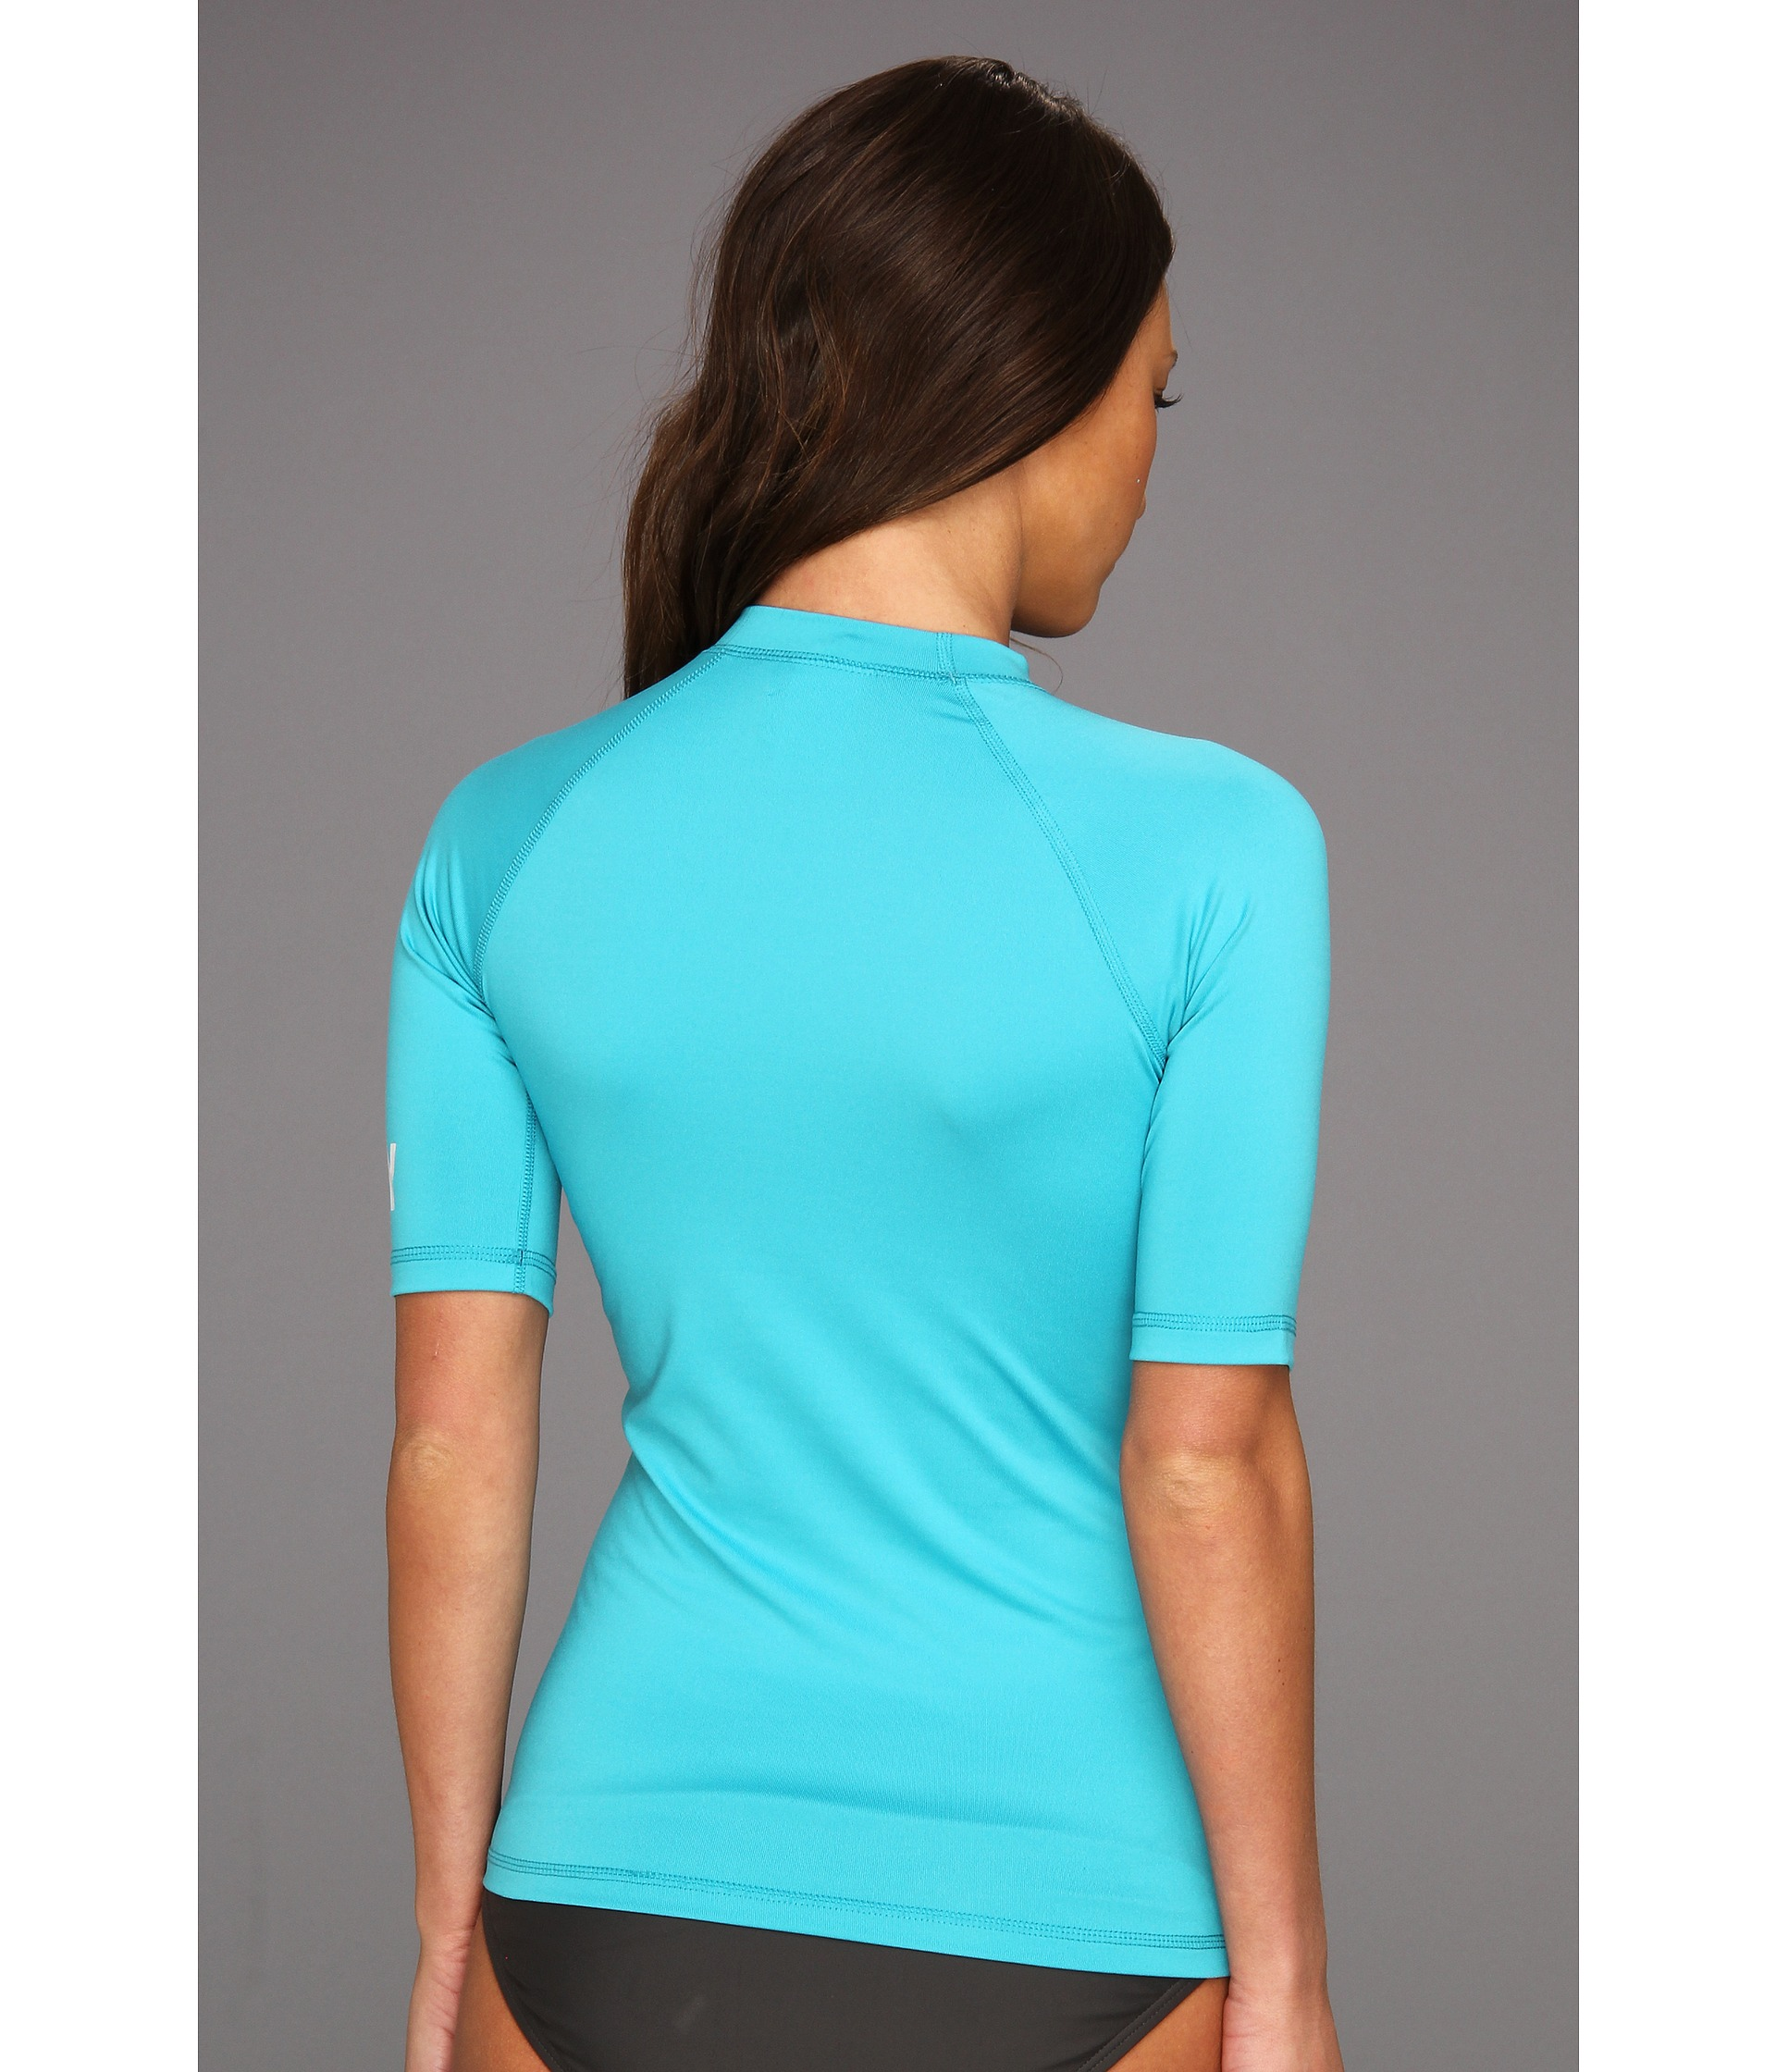 Roxy Whole Hearted Regular Fit S S Rashguard